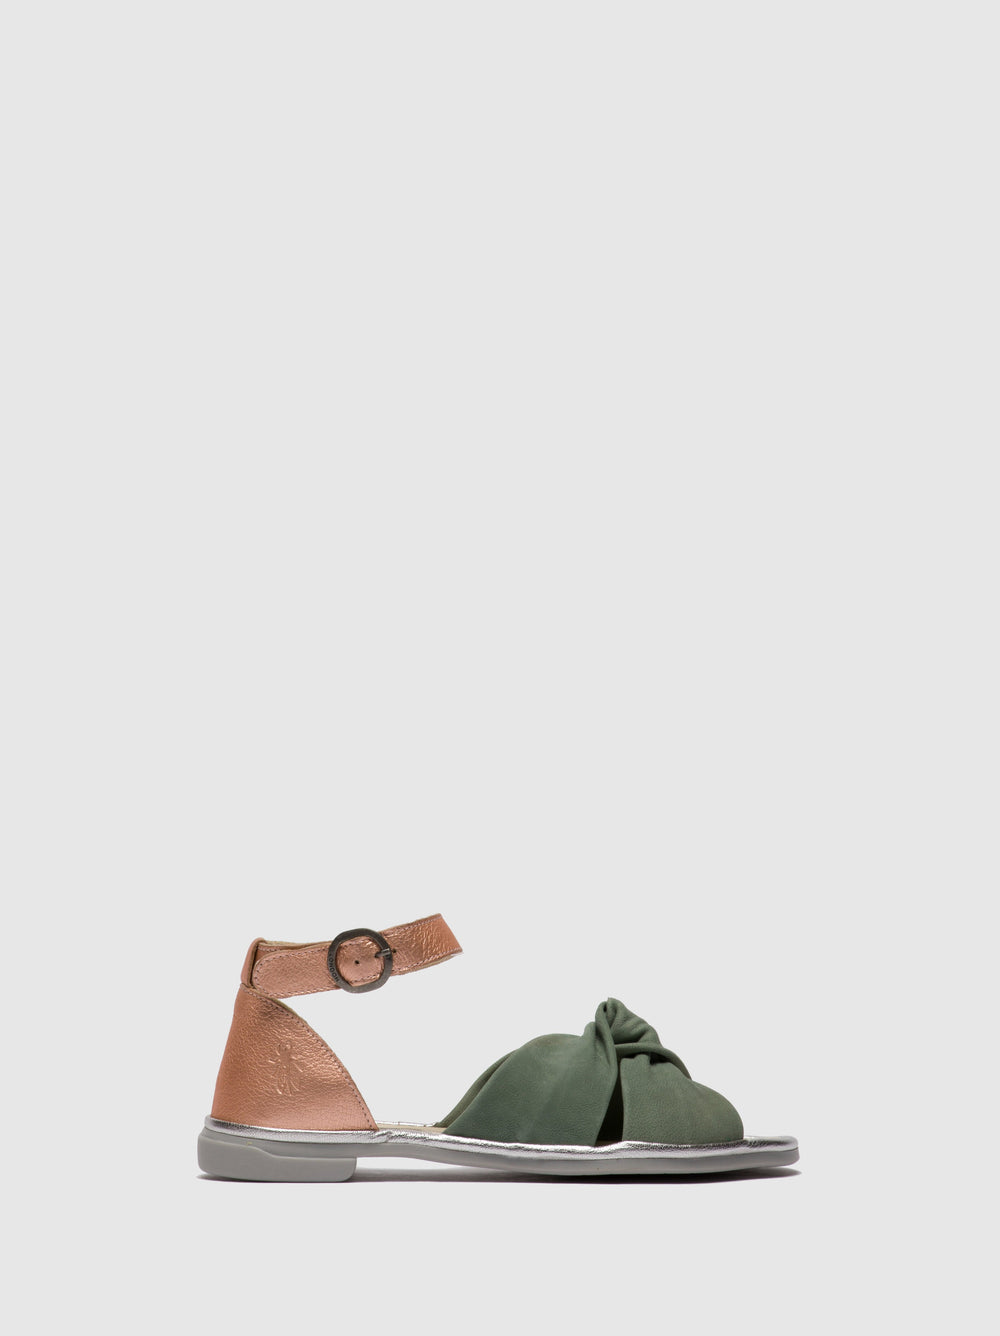 Ankle Strap Sandals COFA167FLY JADE GREEN/BLUSH GOLD/SILVER